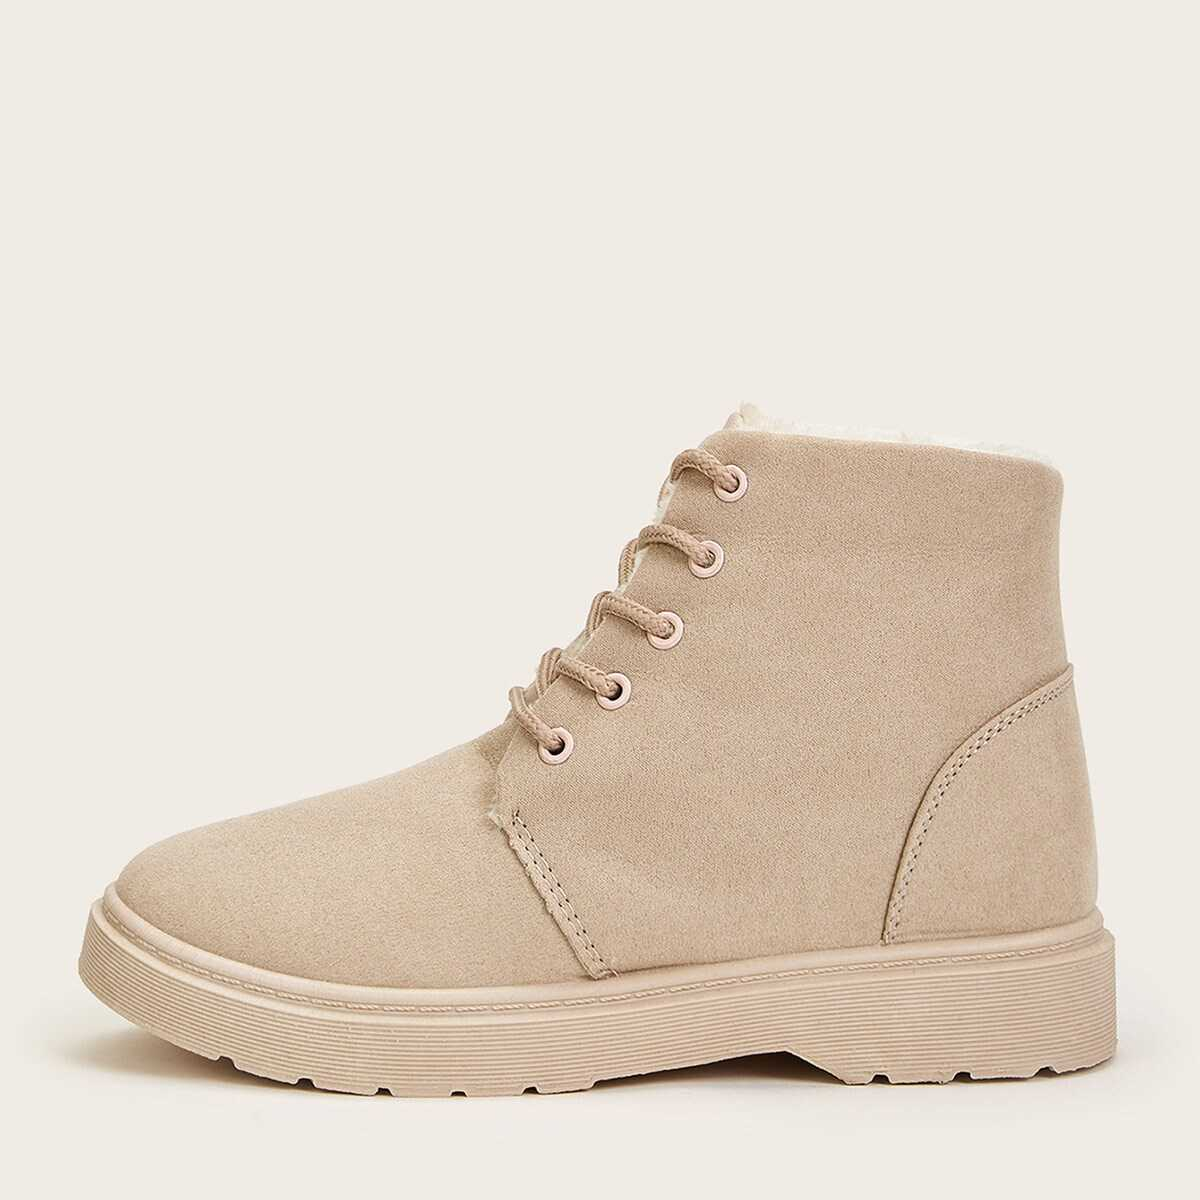 Lace Up Faux Fur Lined Boots in Beige by ROMWE on GOOFASH